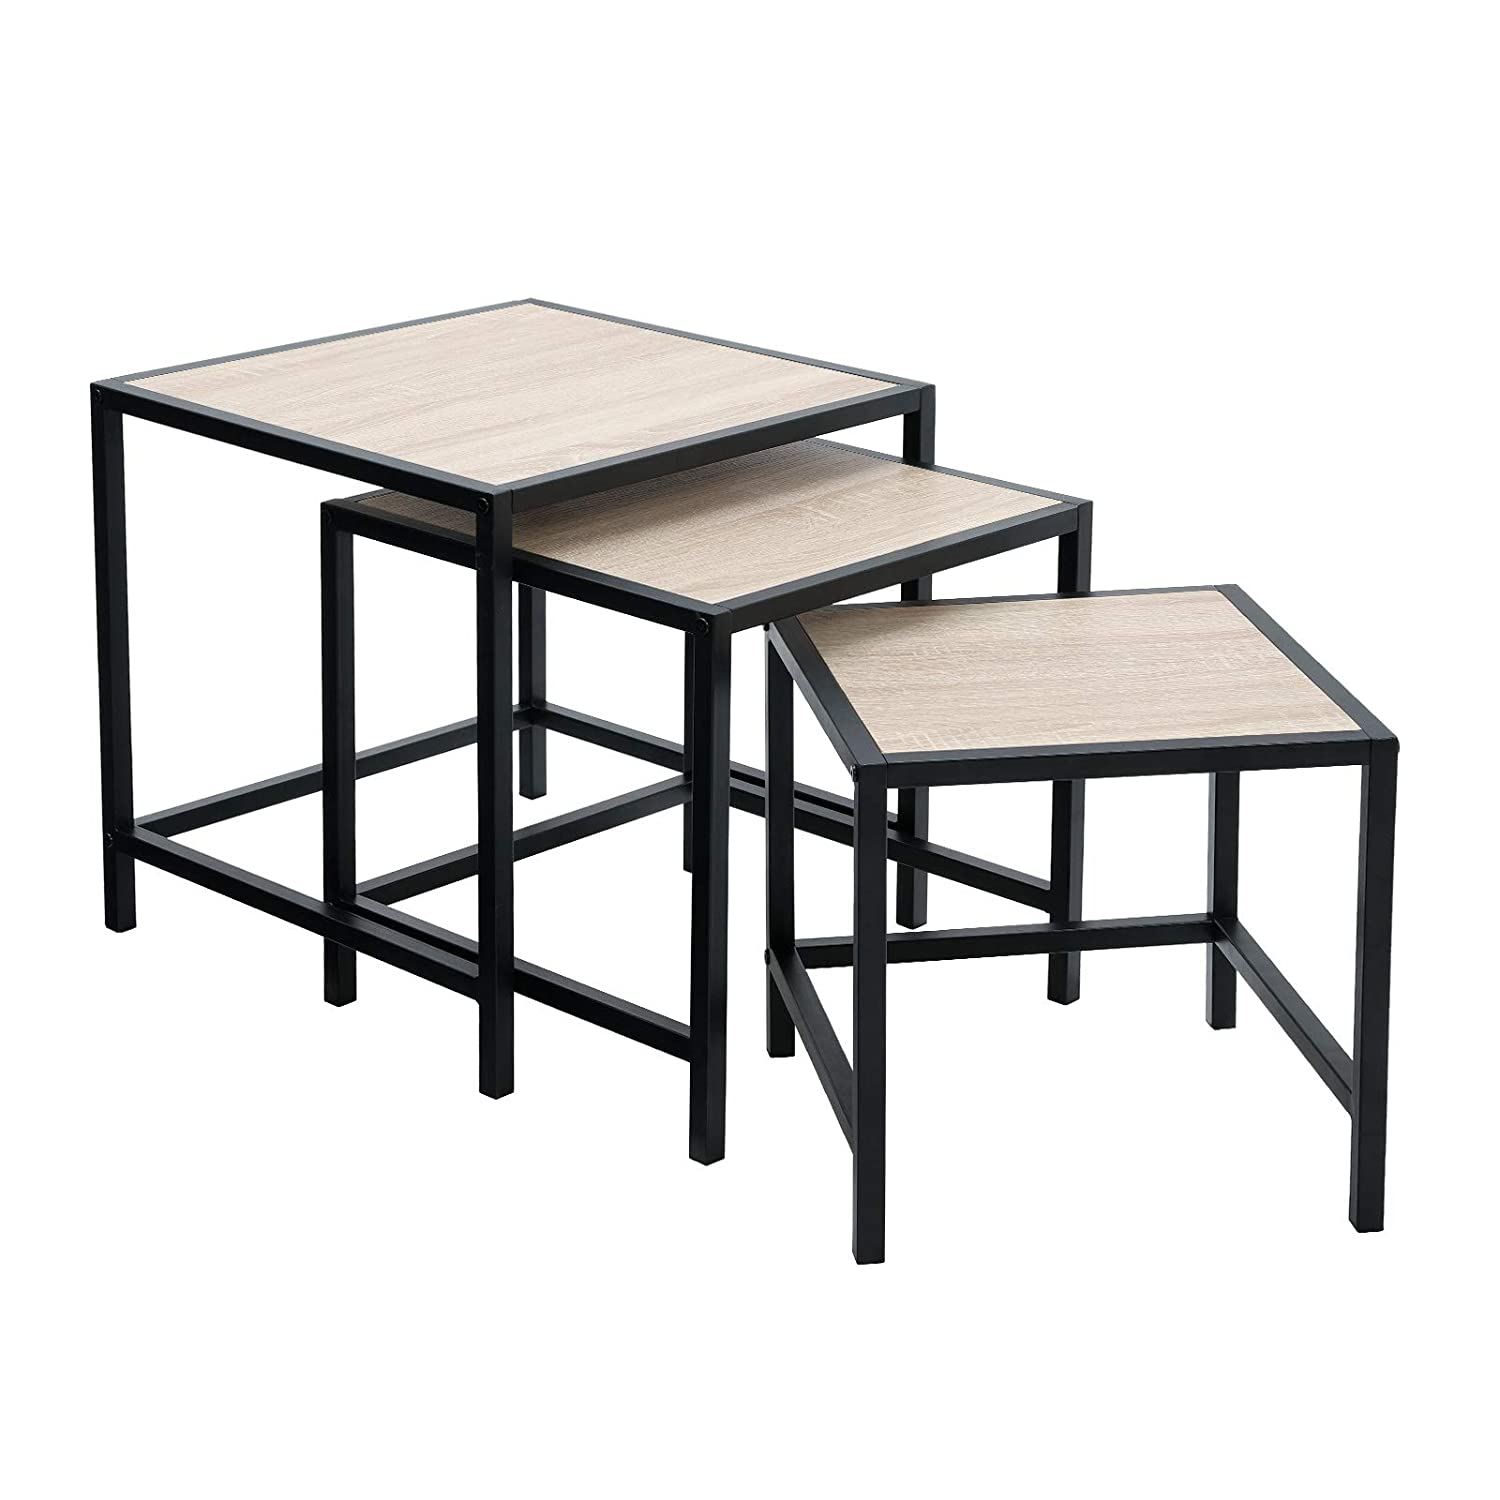 SONGMICS Nesting Side Table Set of 3, Coffee Table with Metal Frame, Wood Look, Industrial Style, for Living Room, Kitchen, Bedroom, Balcony, Rustic, Dark Brown LNT03BX